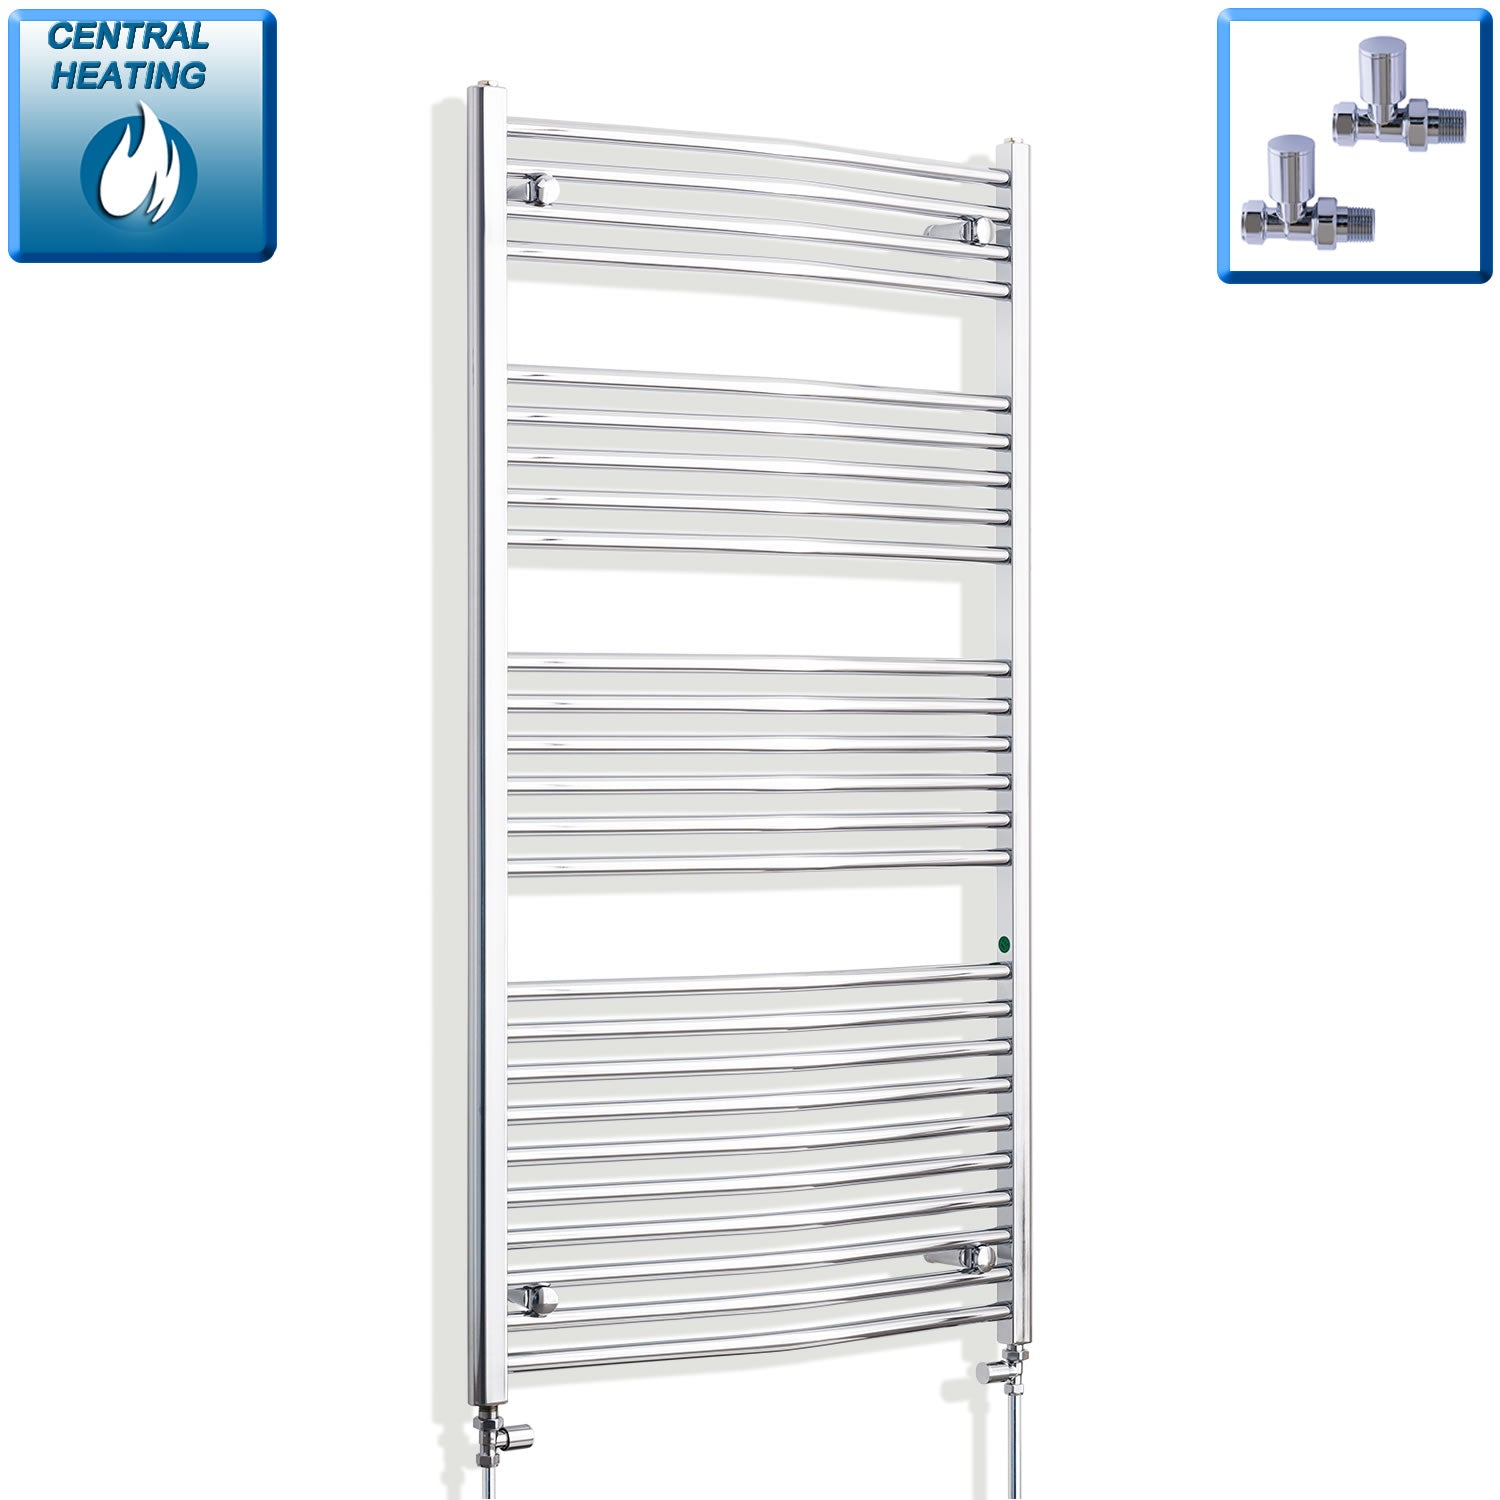 750mm x 1400mm High Curved Chrome Towel Rail Radiator With Straight Valve